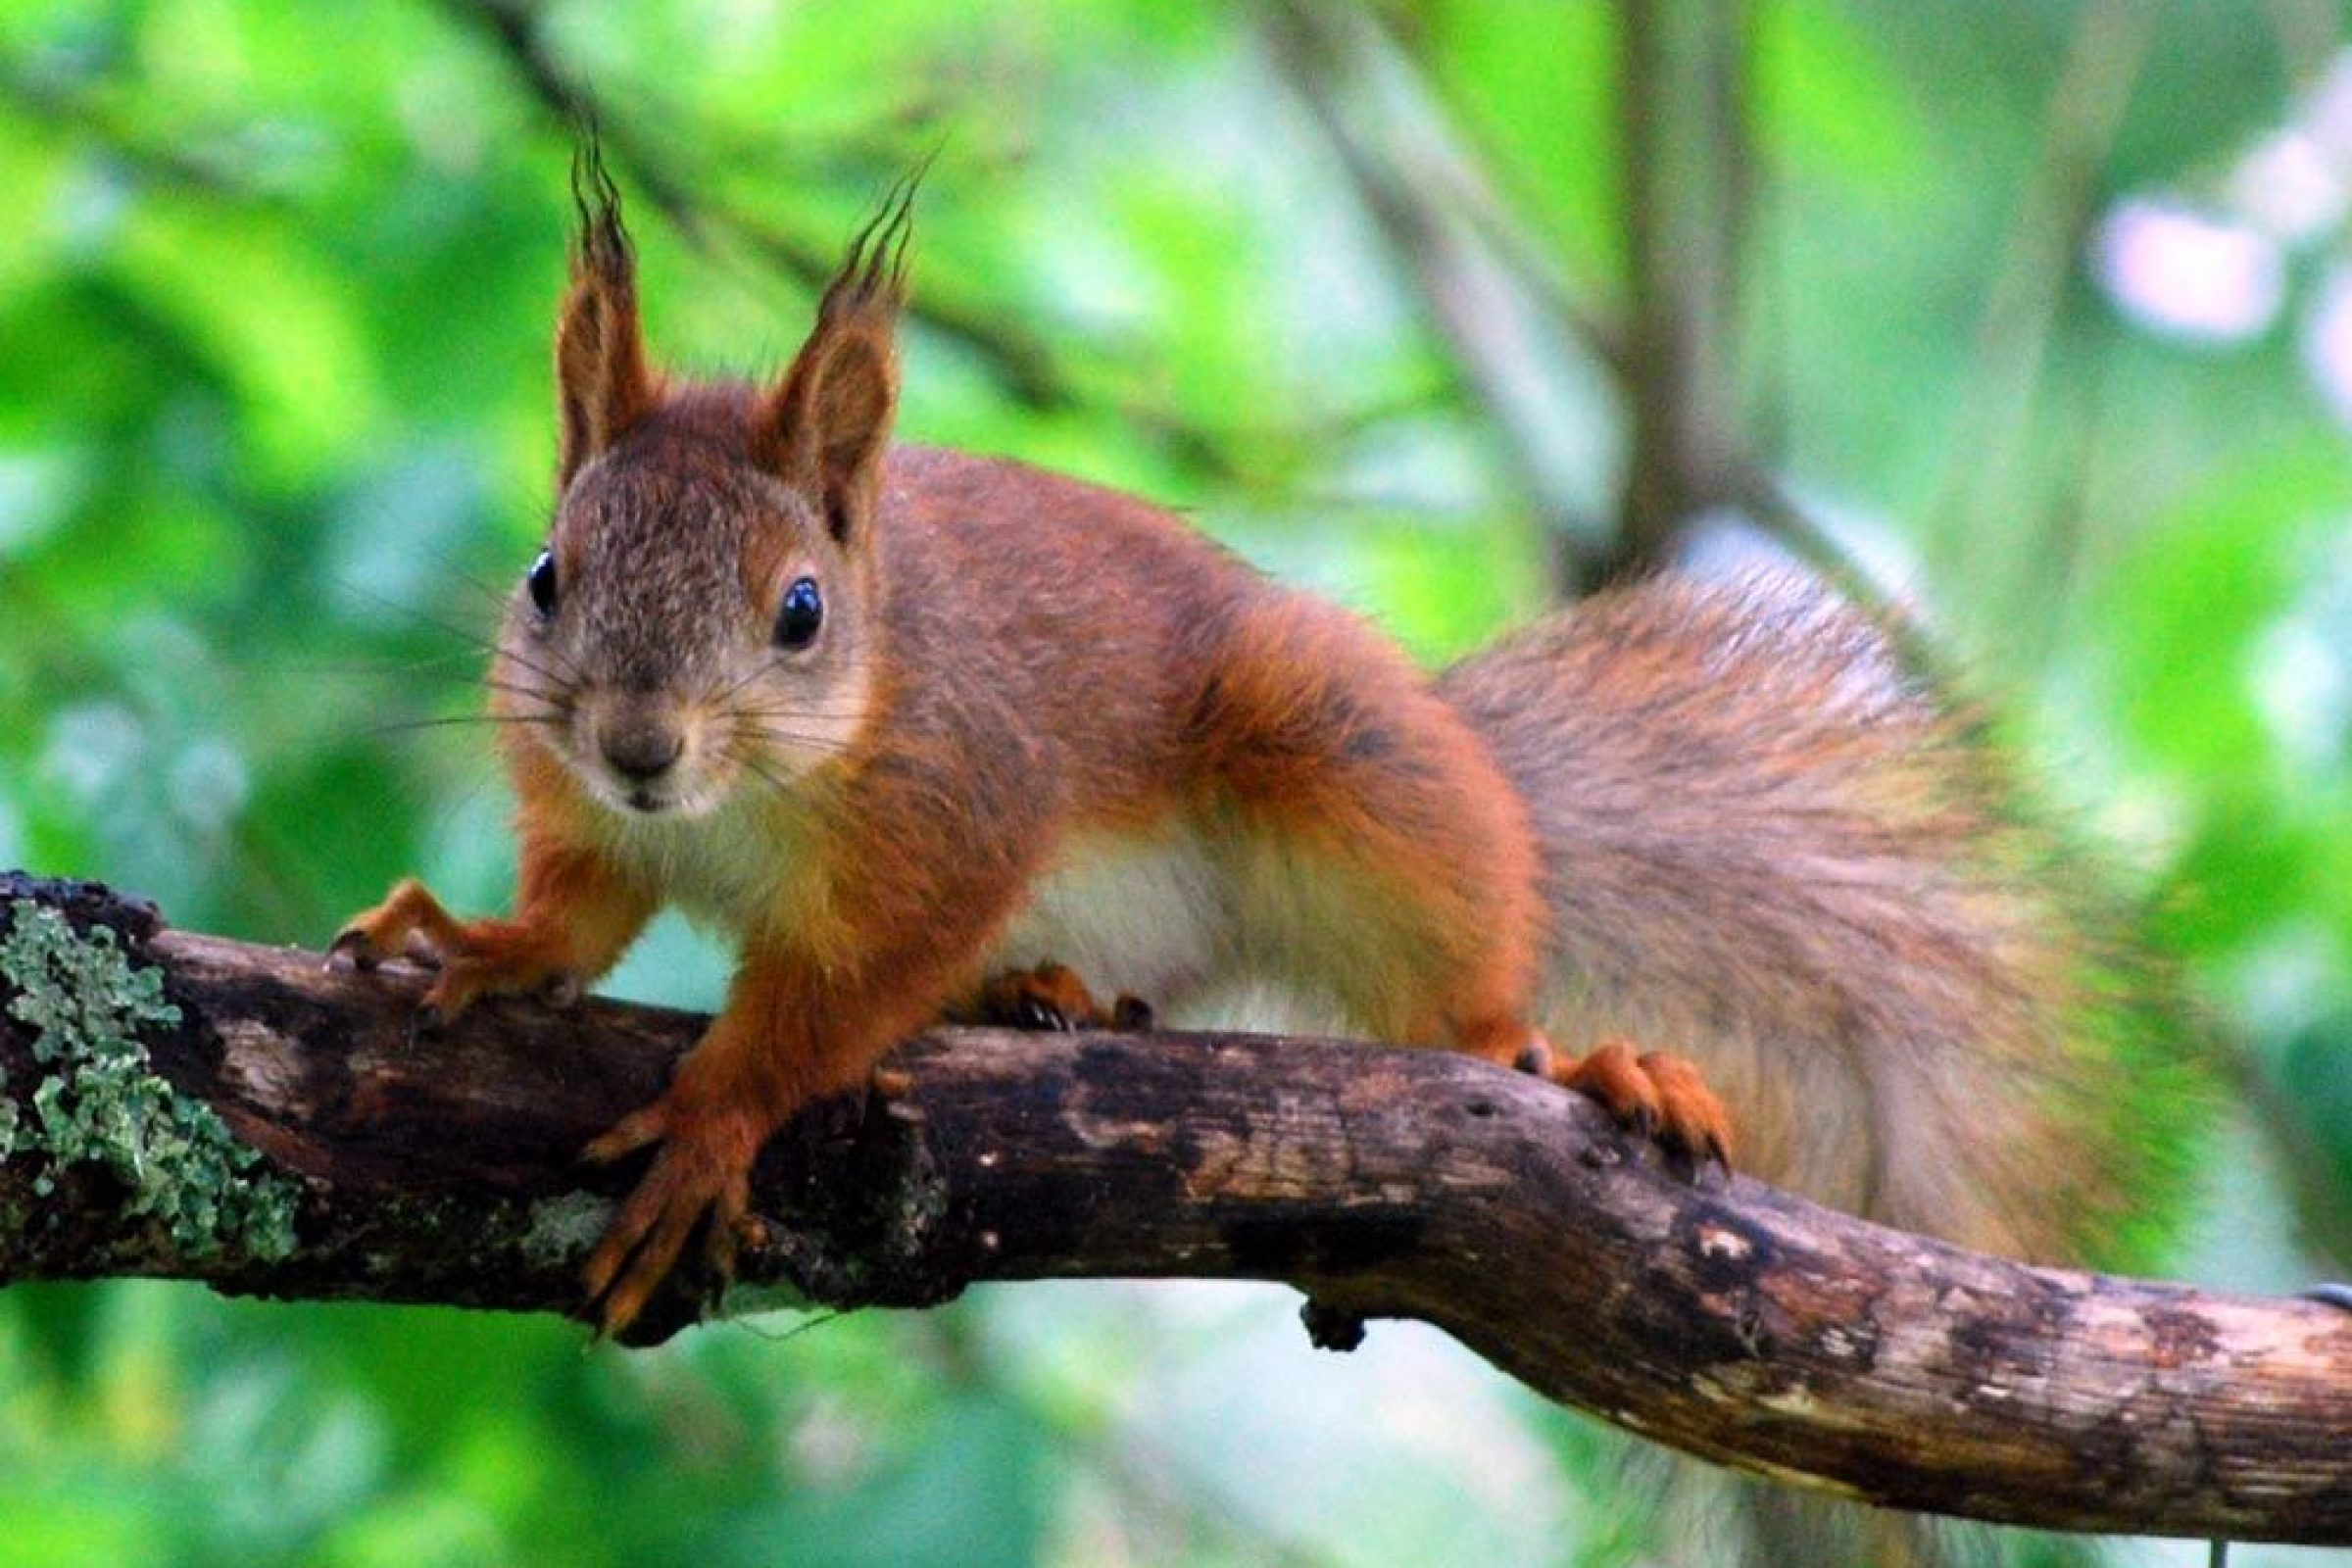 Red Squirrels can be found on Brownsea Island in Poole Harbour.